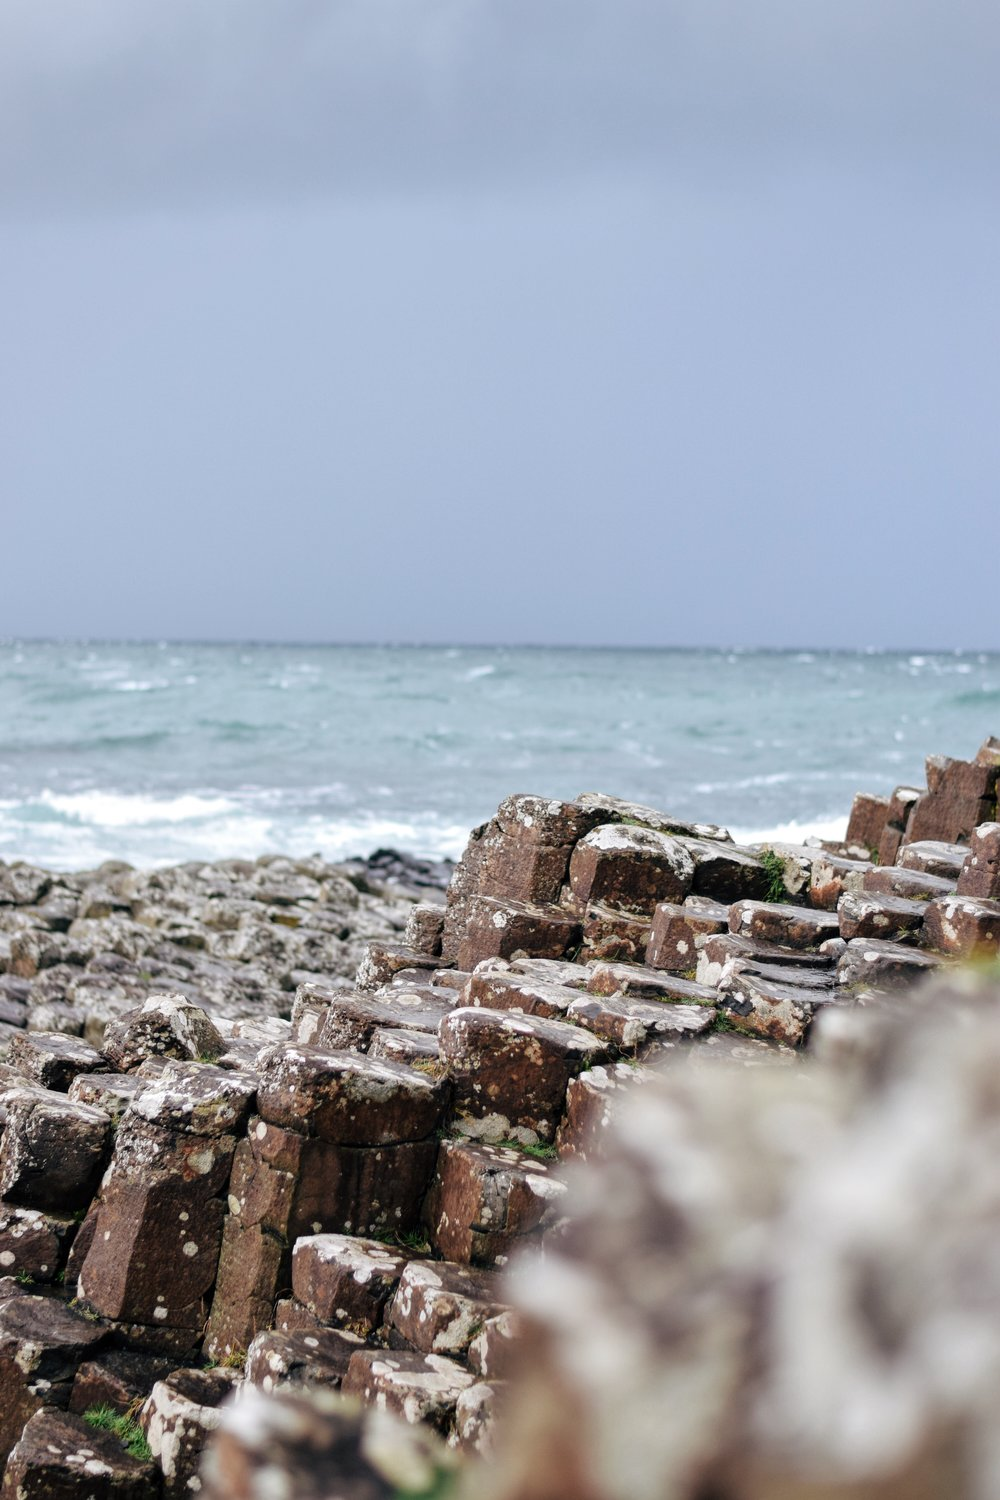 Basalt Columns at Giant's Causeway ( Nikon D3300, 50mm, f/2, 1/1250 sec, ISO 400 processed with VSCO E1 preset)